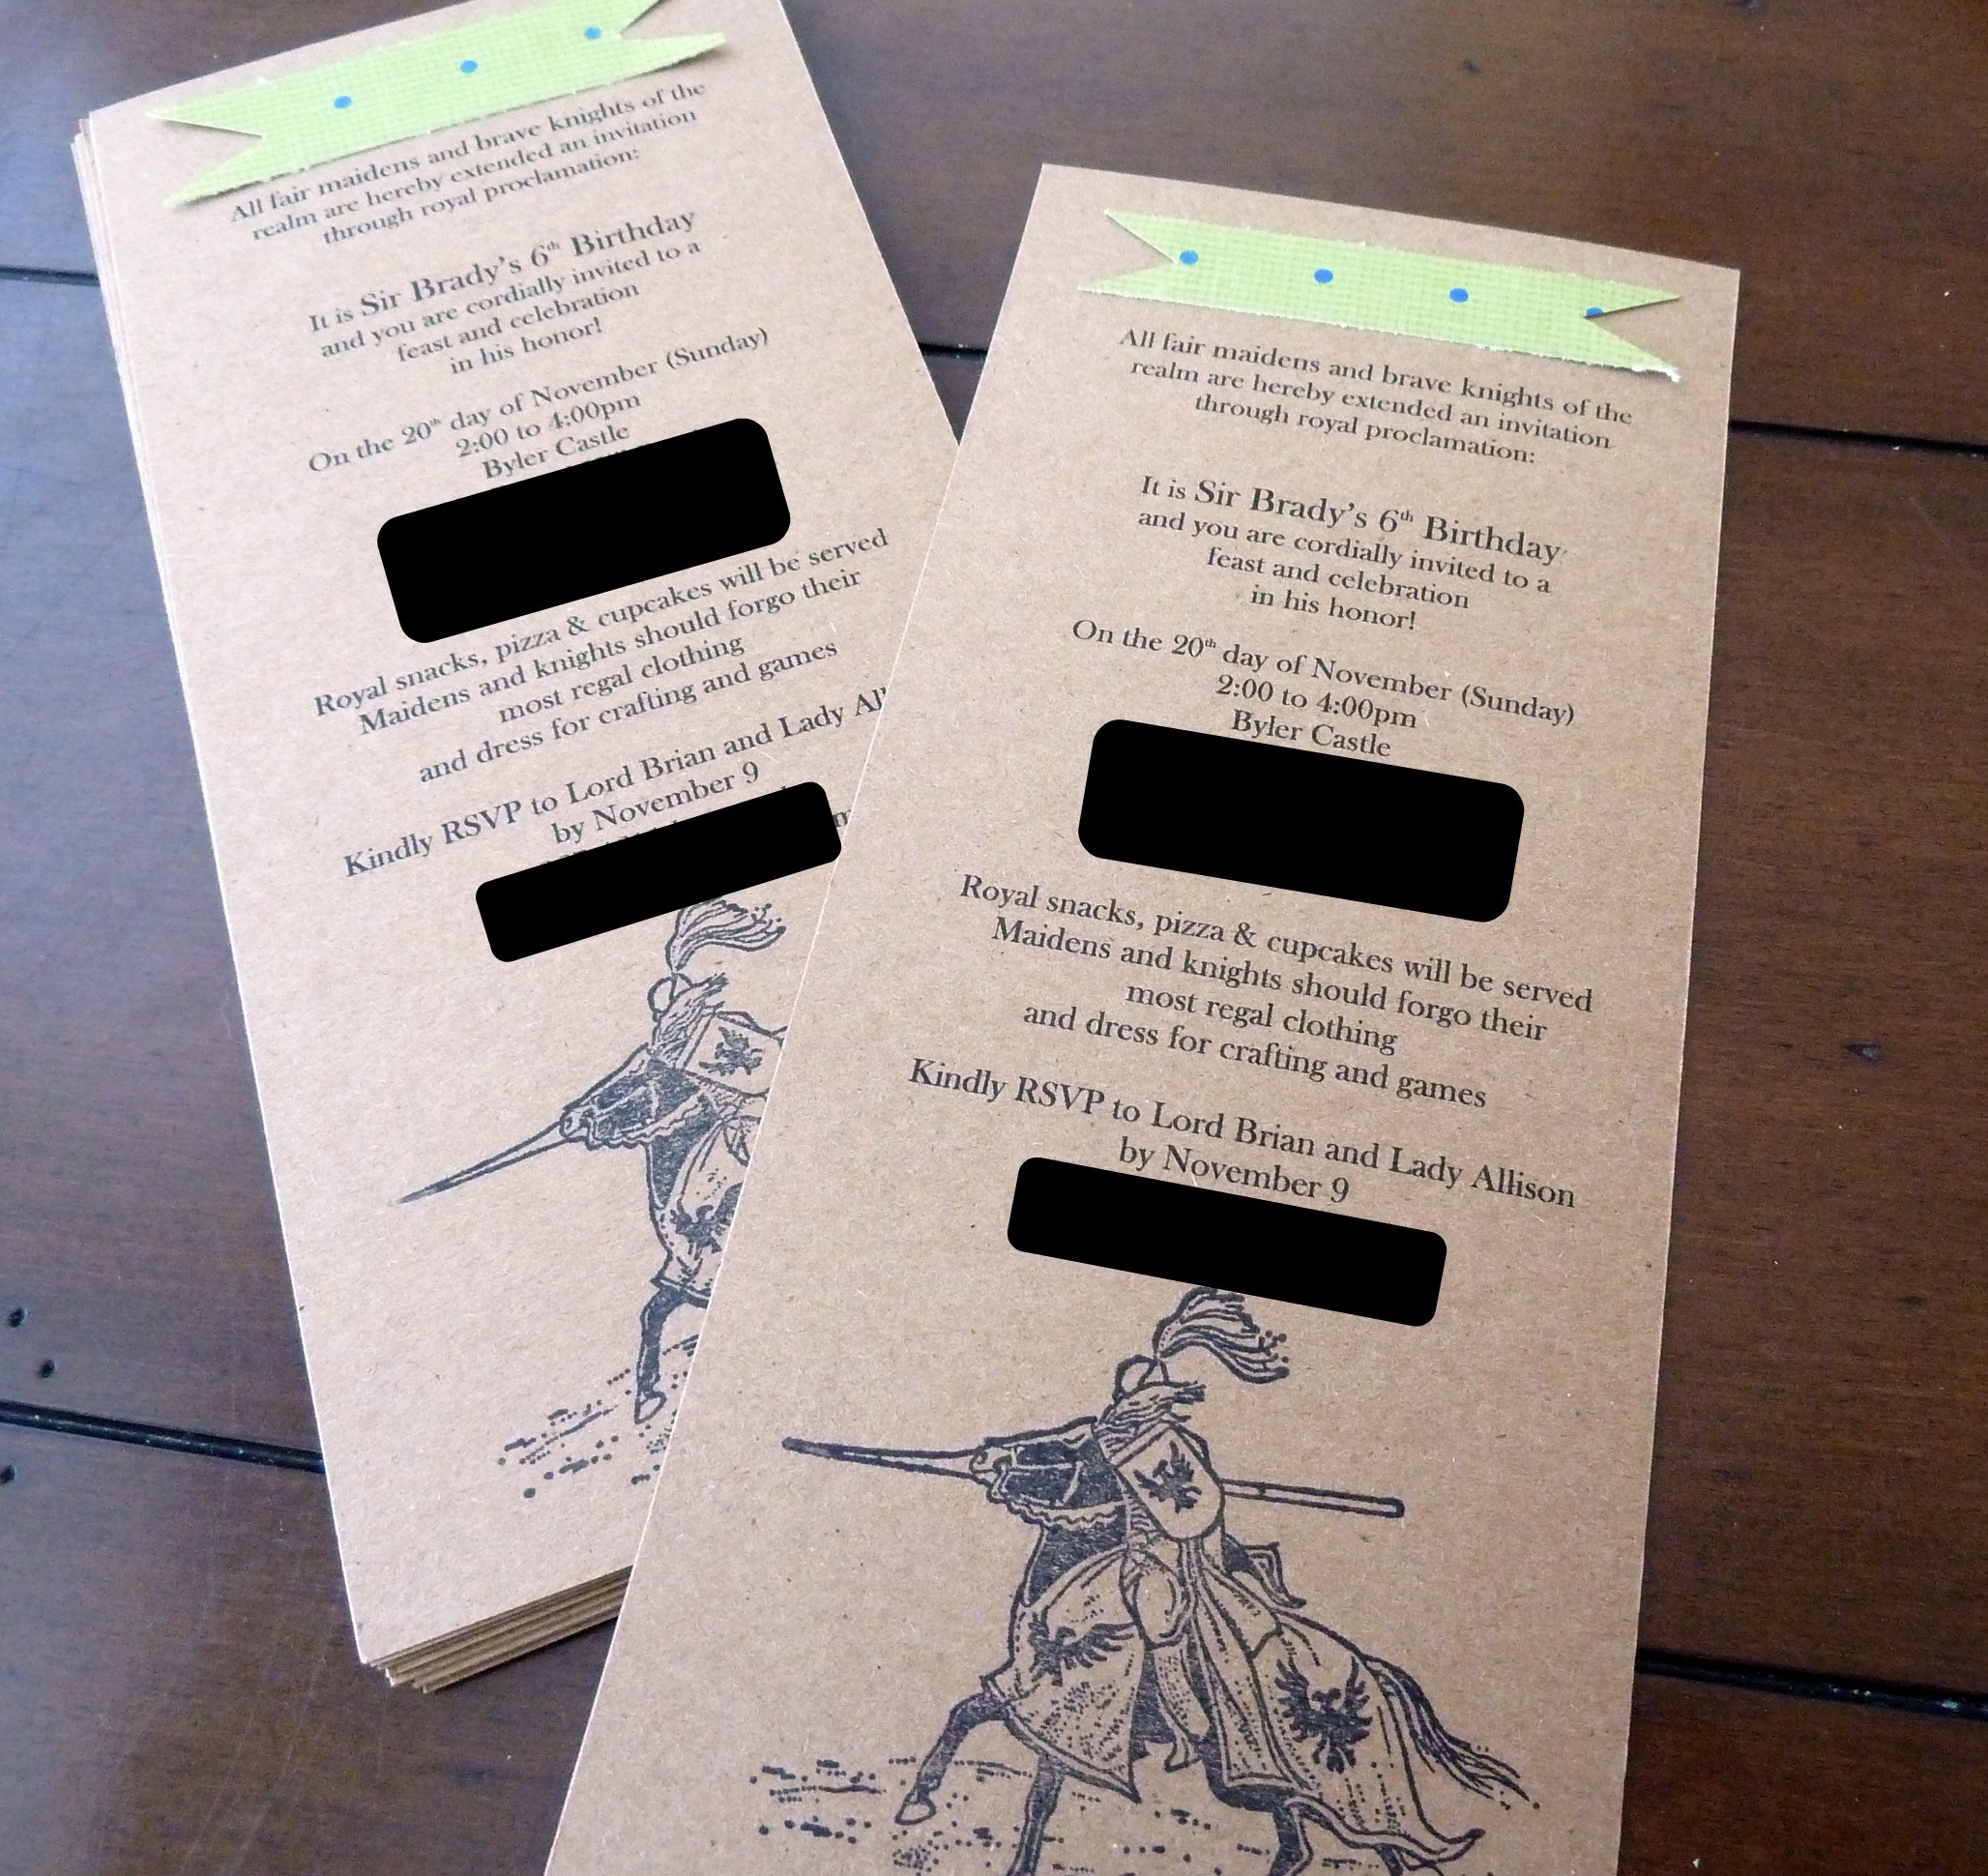 medieval times birthday invitation ; invitation-wording-for-medieval-party-inspirationa-me-val-times-invitation-wording-of-invitation-wording-for-medieval-party